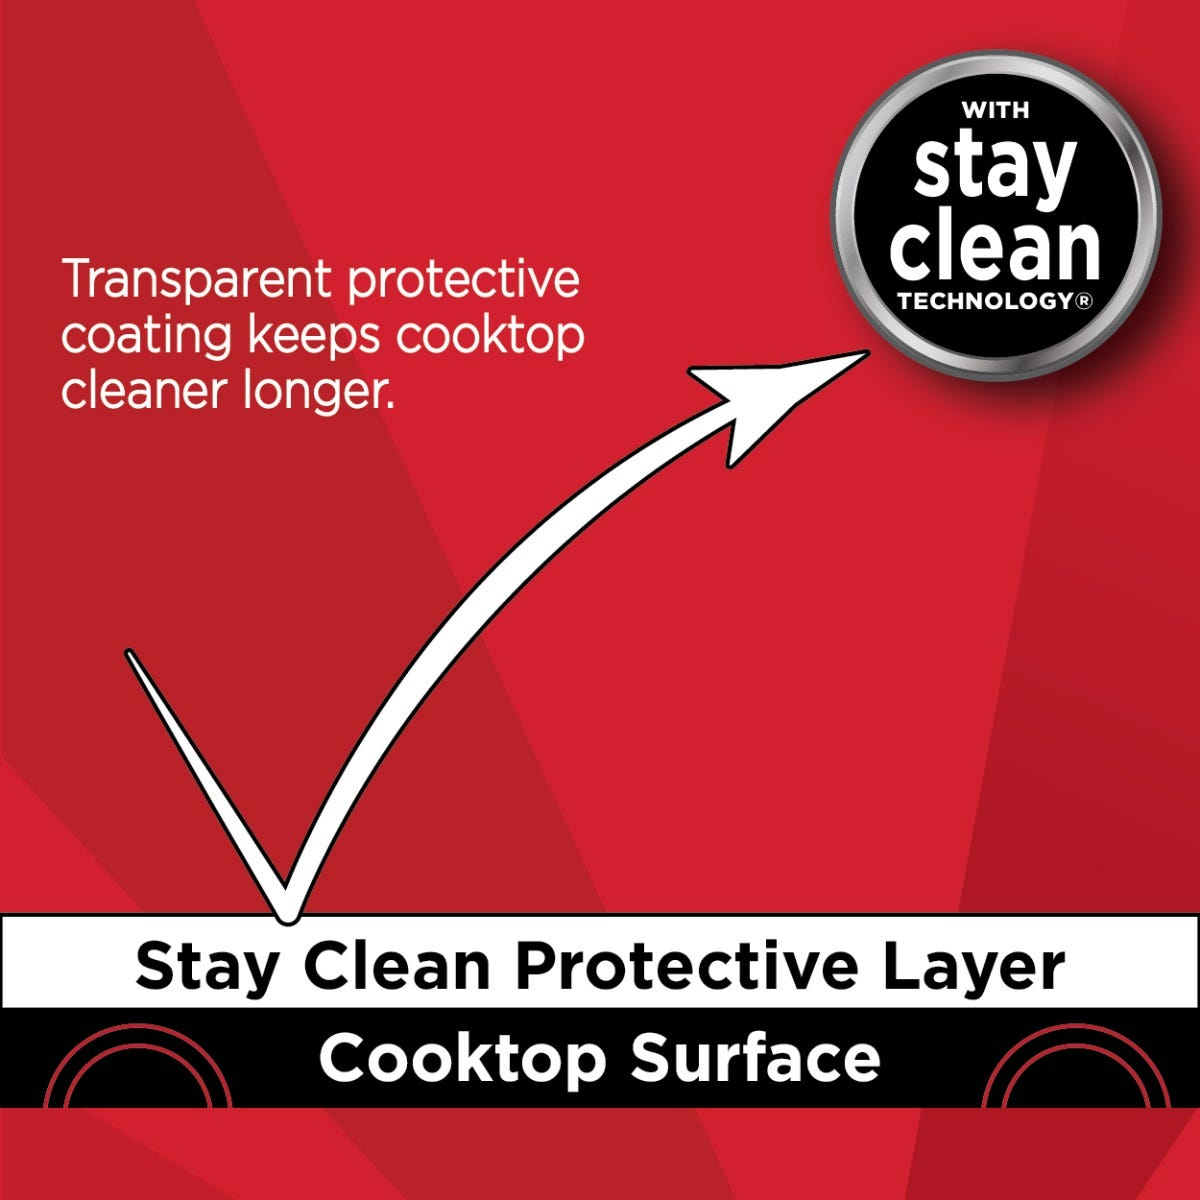 Cooktop protective coating